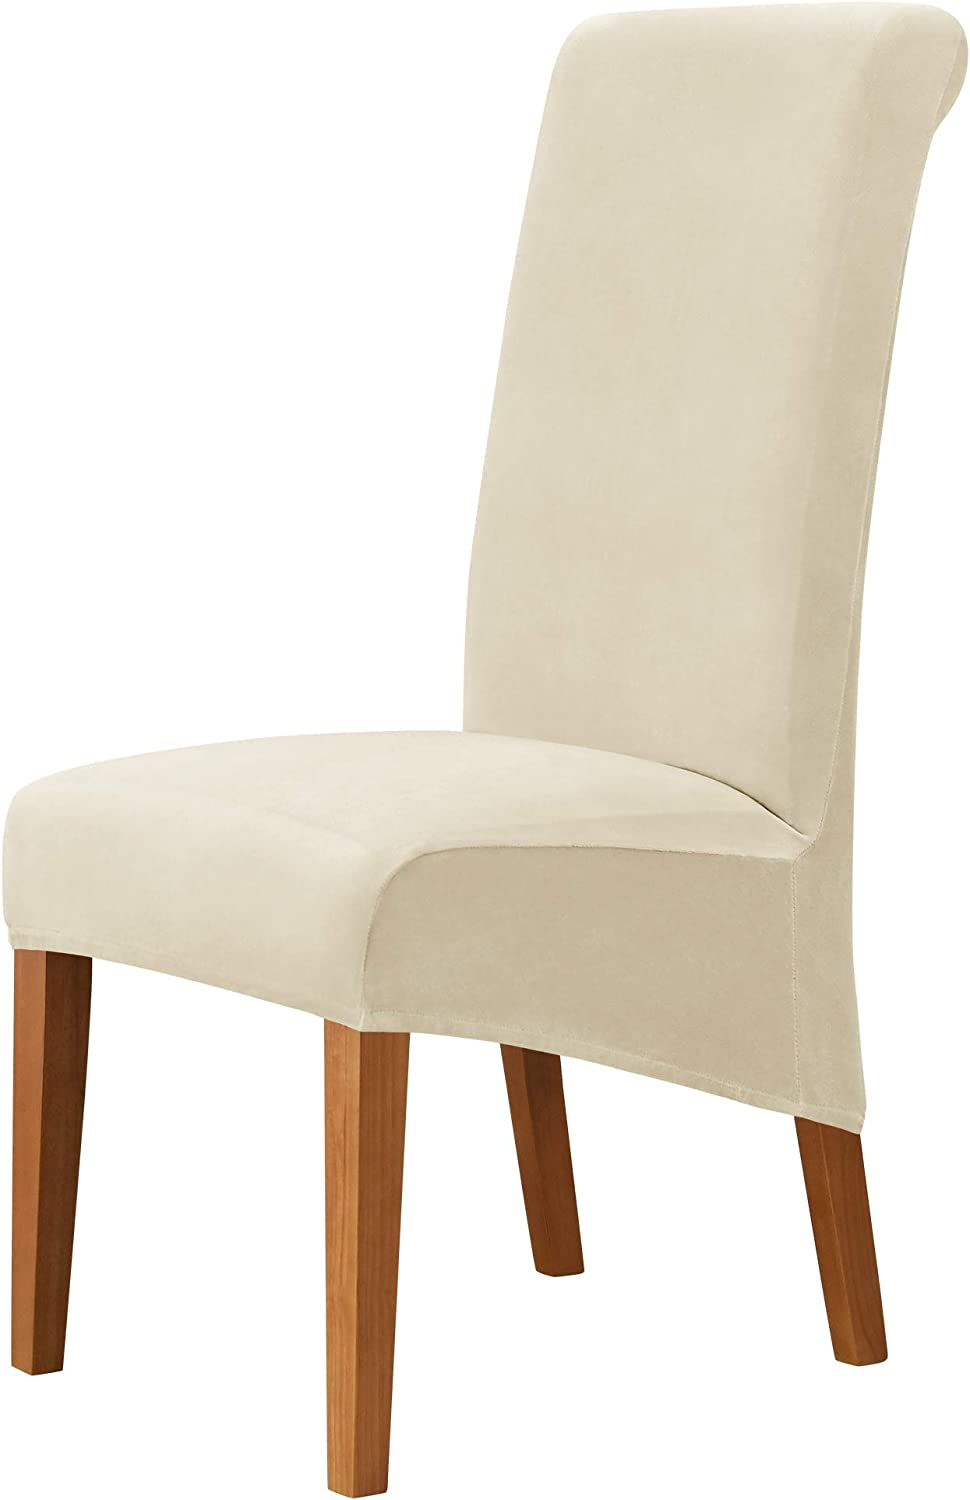 MILARAN Velvet Large Chair Covers for Dining Room, Soft Stretch Seat Slipcover for Large Dining Chair, Washable Removable Parsons Chair Protector,Set of 2,Cream